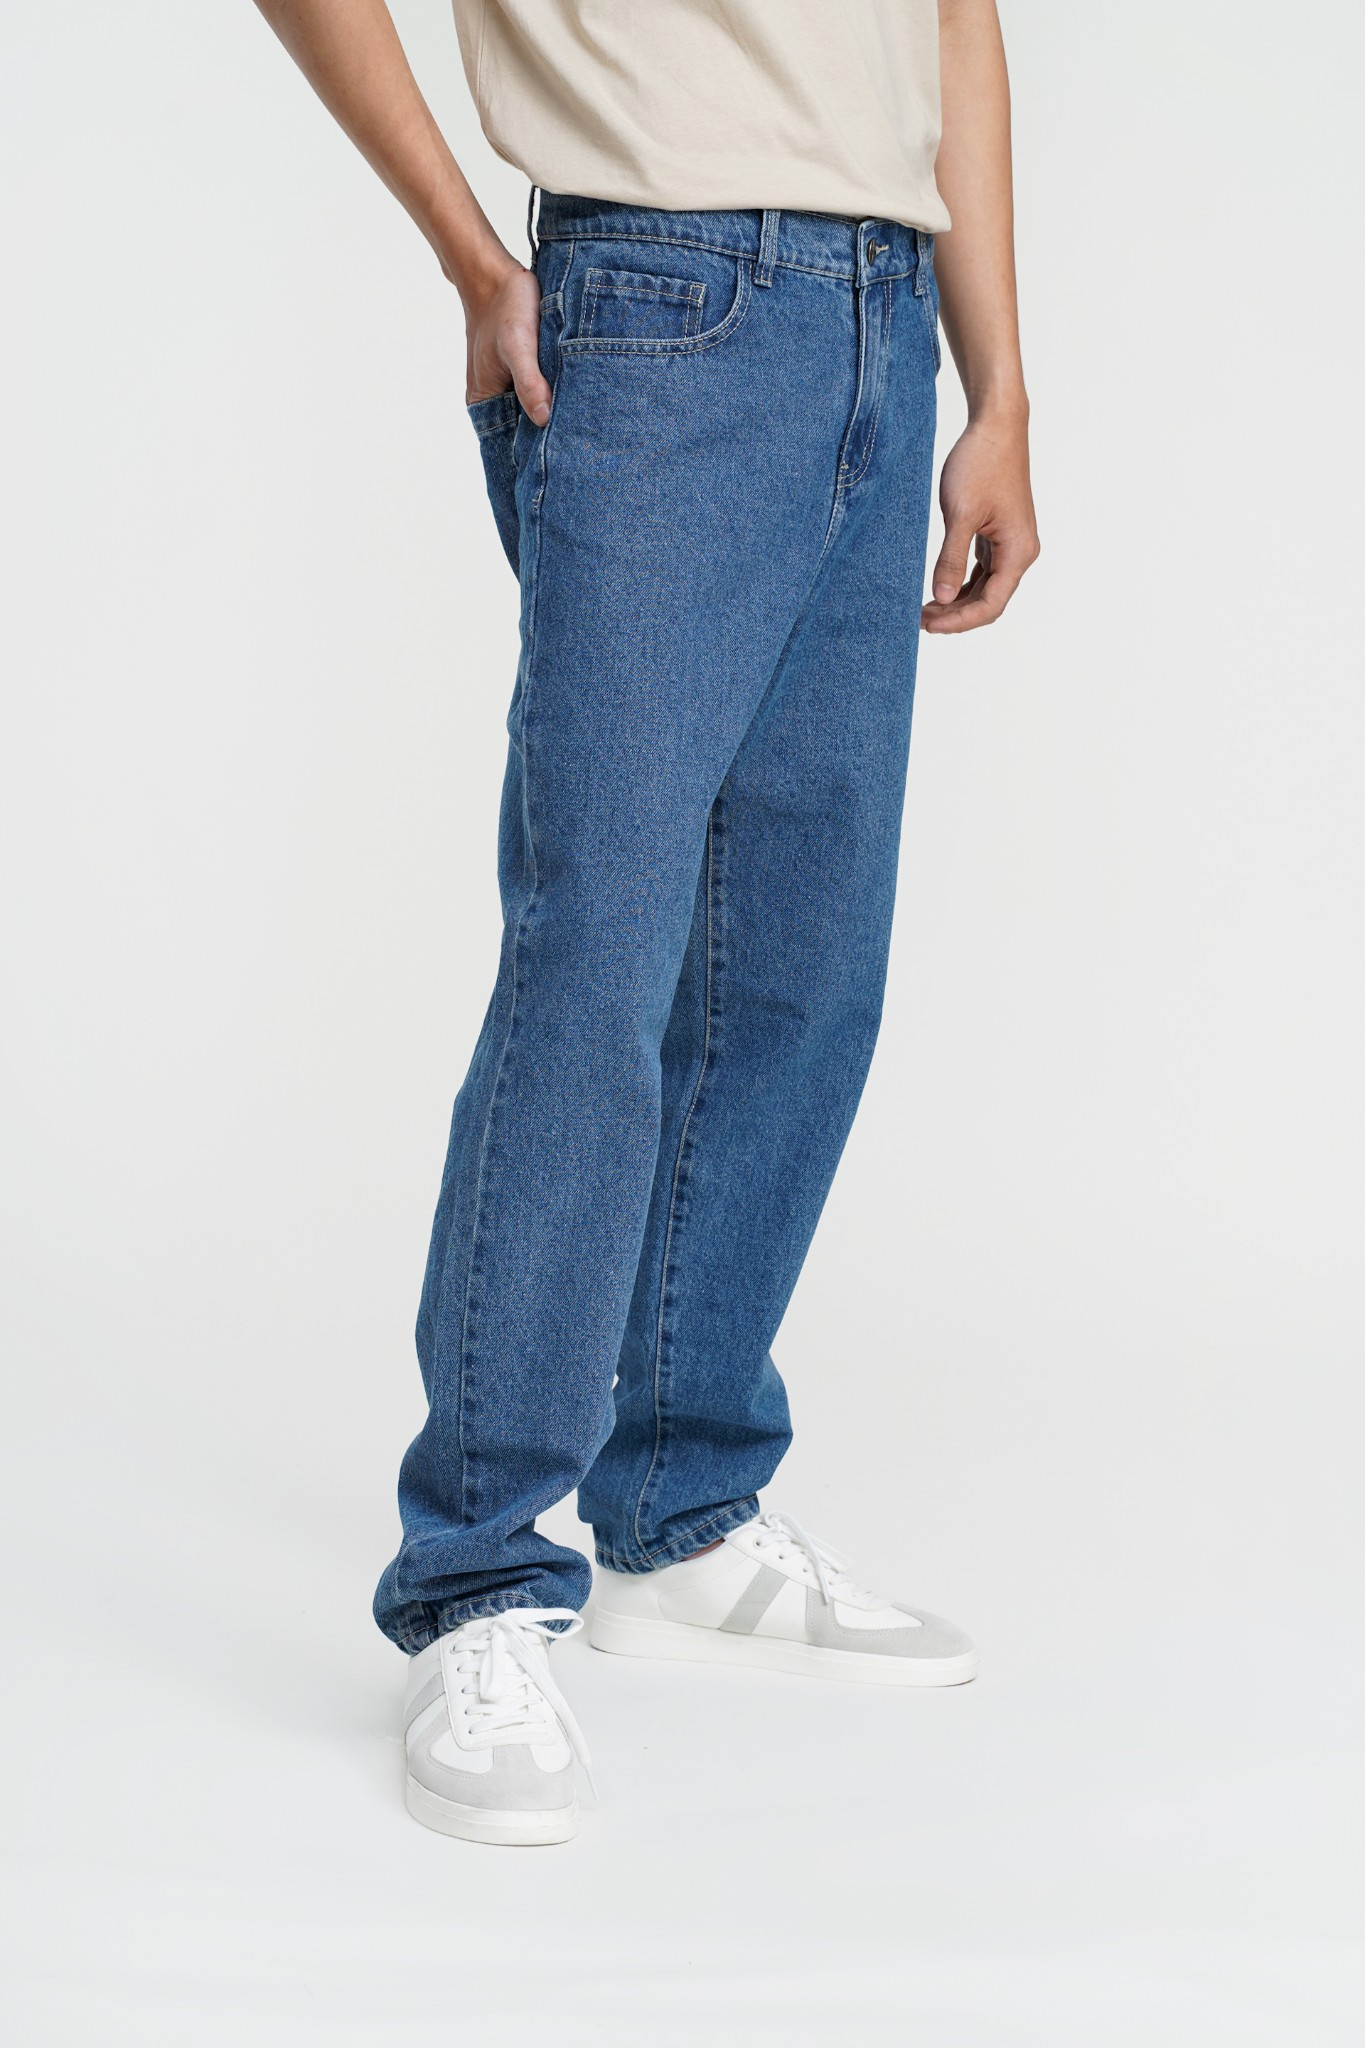 QUẦN JEANS NAM TAPERED JEANS